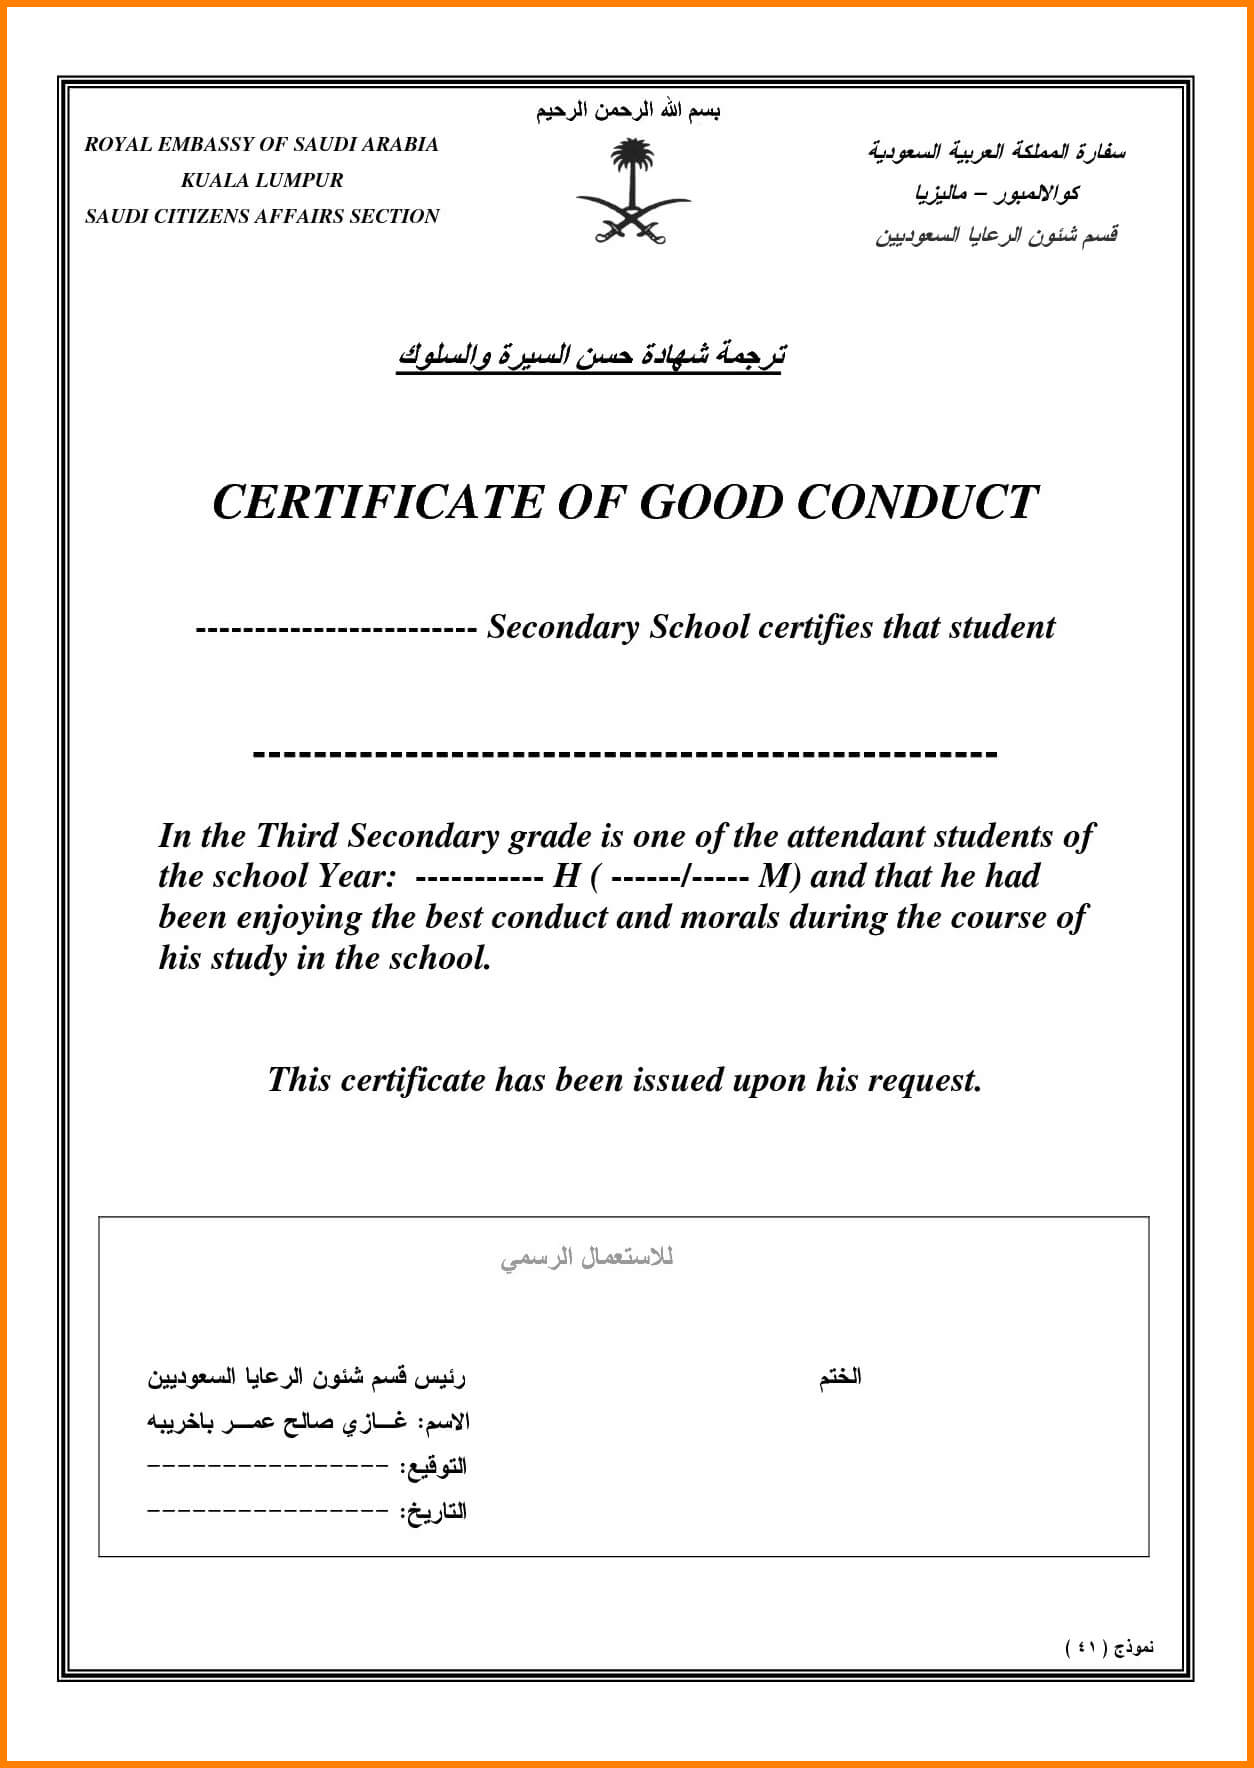 Good Conduct Certificate Template - Atlantaauctionco Within Good Conduct Certificate Template